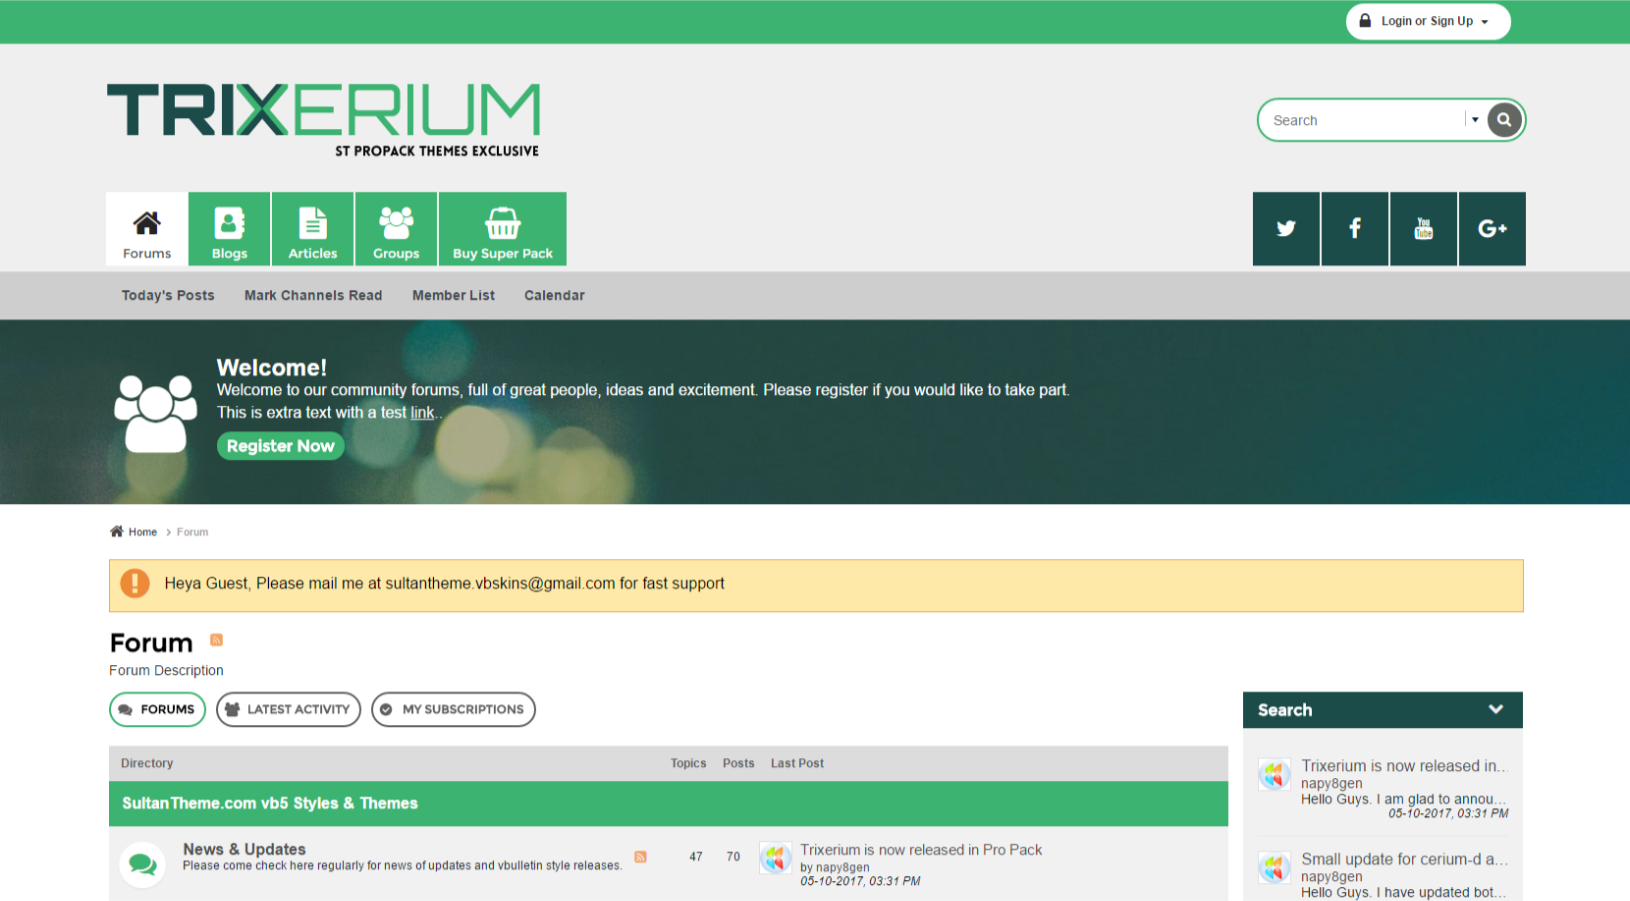 trixerium3 2 - Trixerium Updated